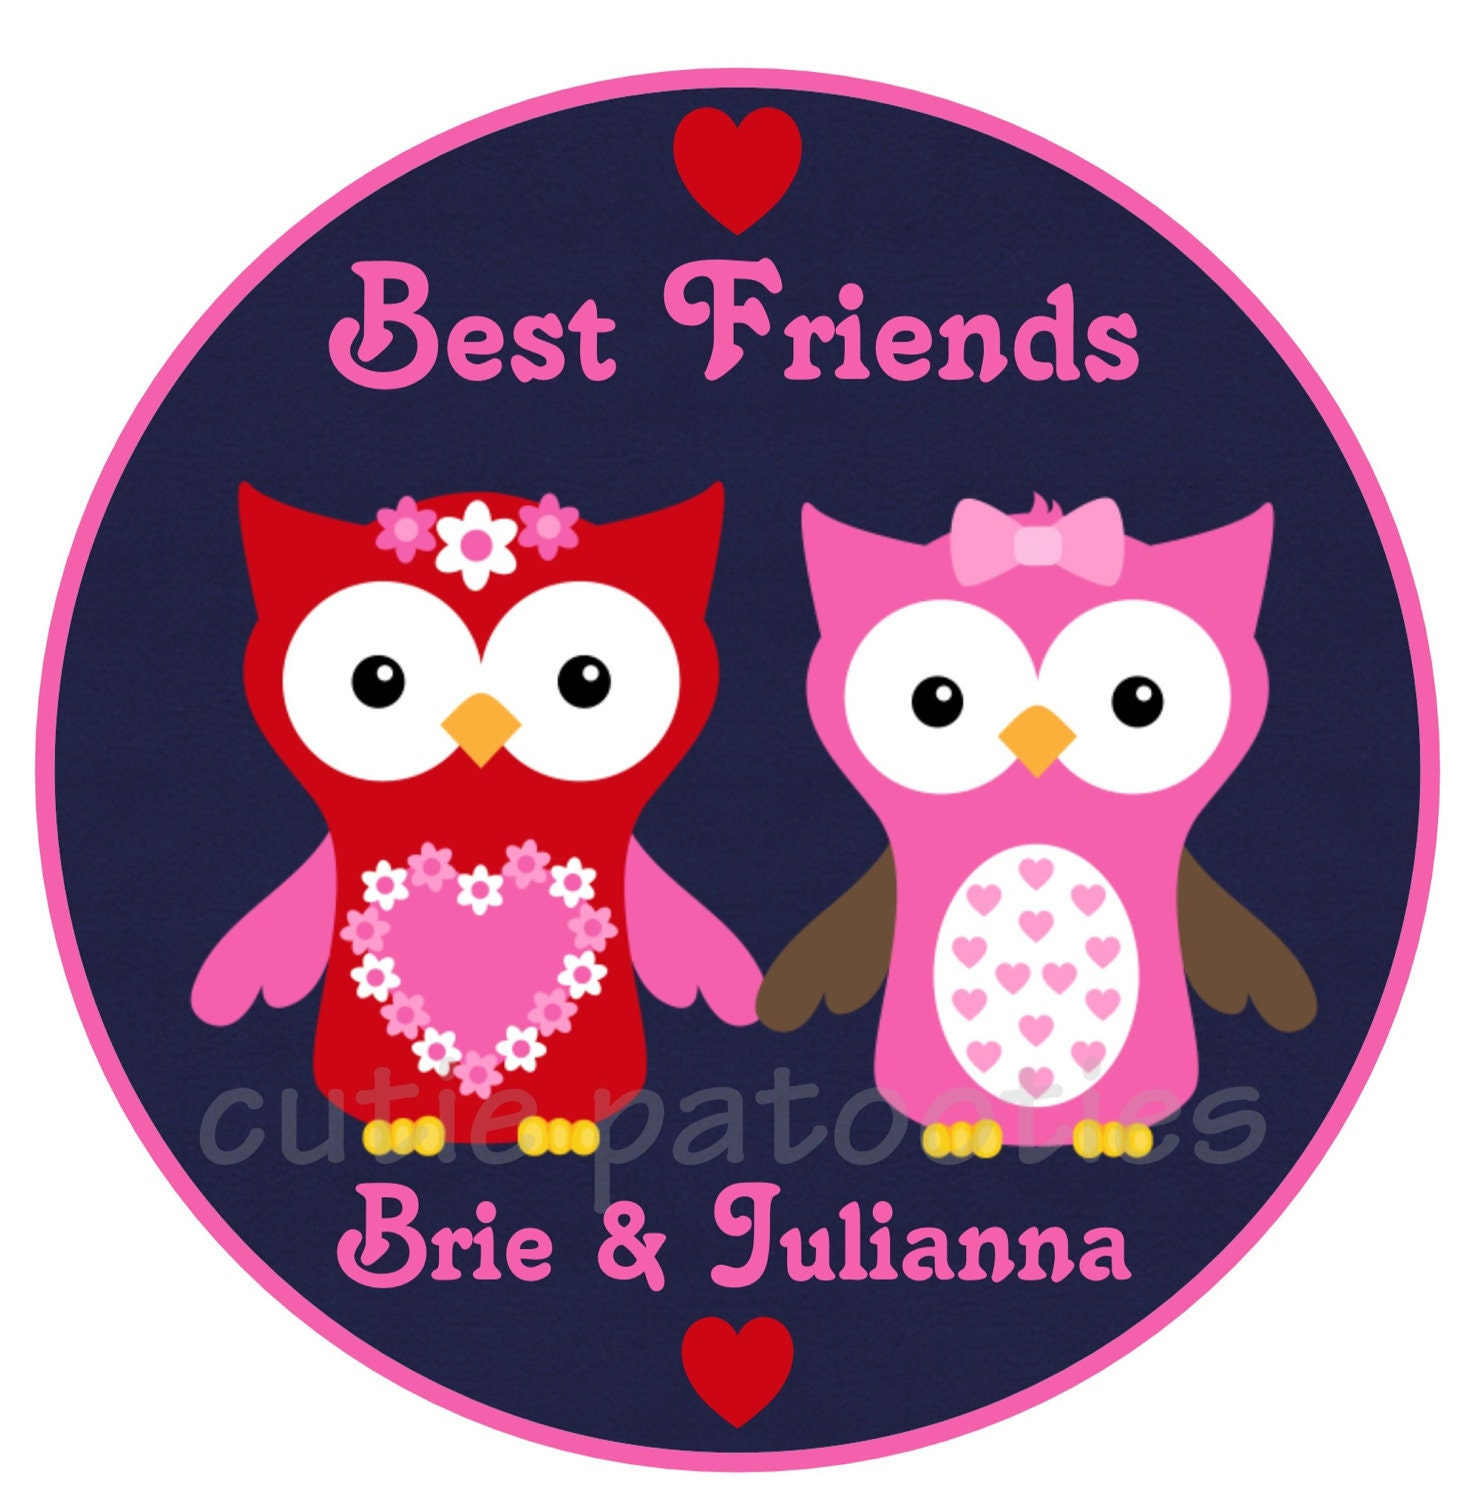 Kids Friendship Quotes: Best Friend Quotes For Kids